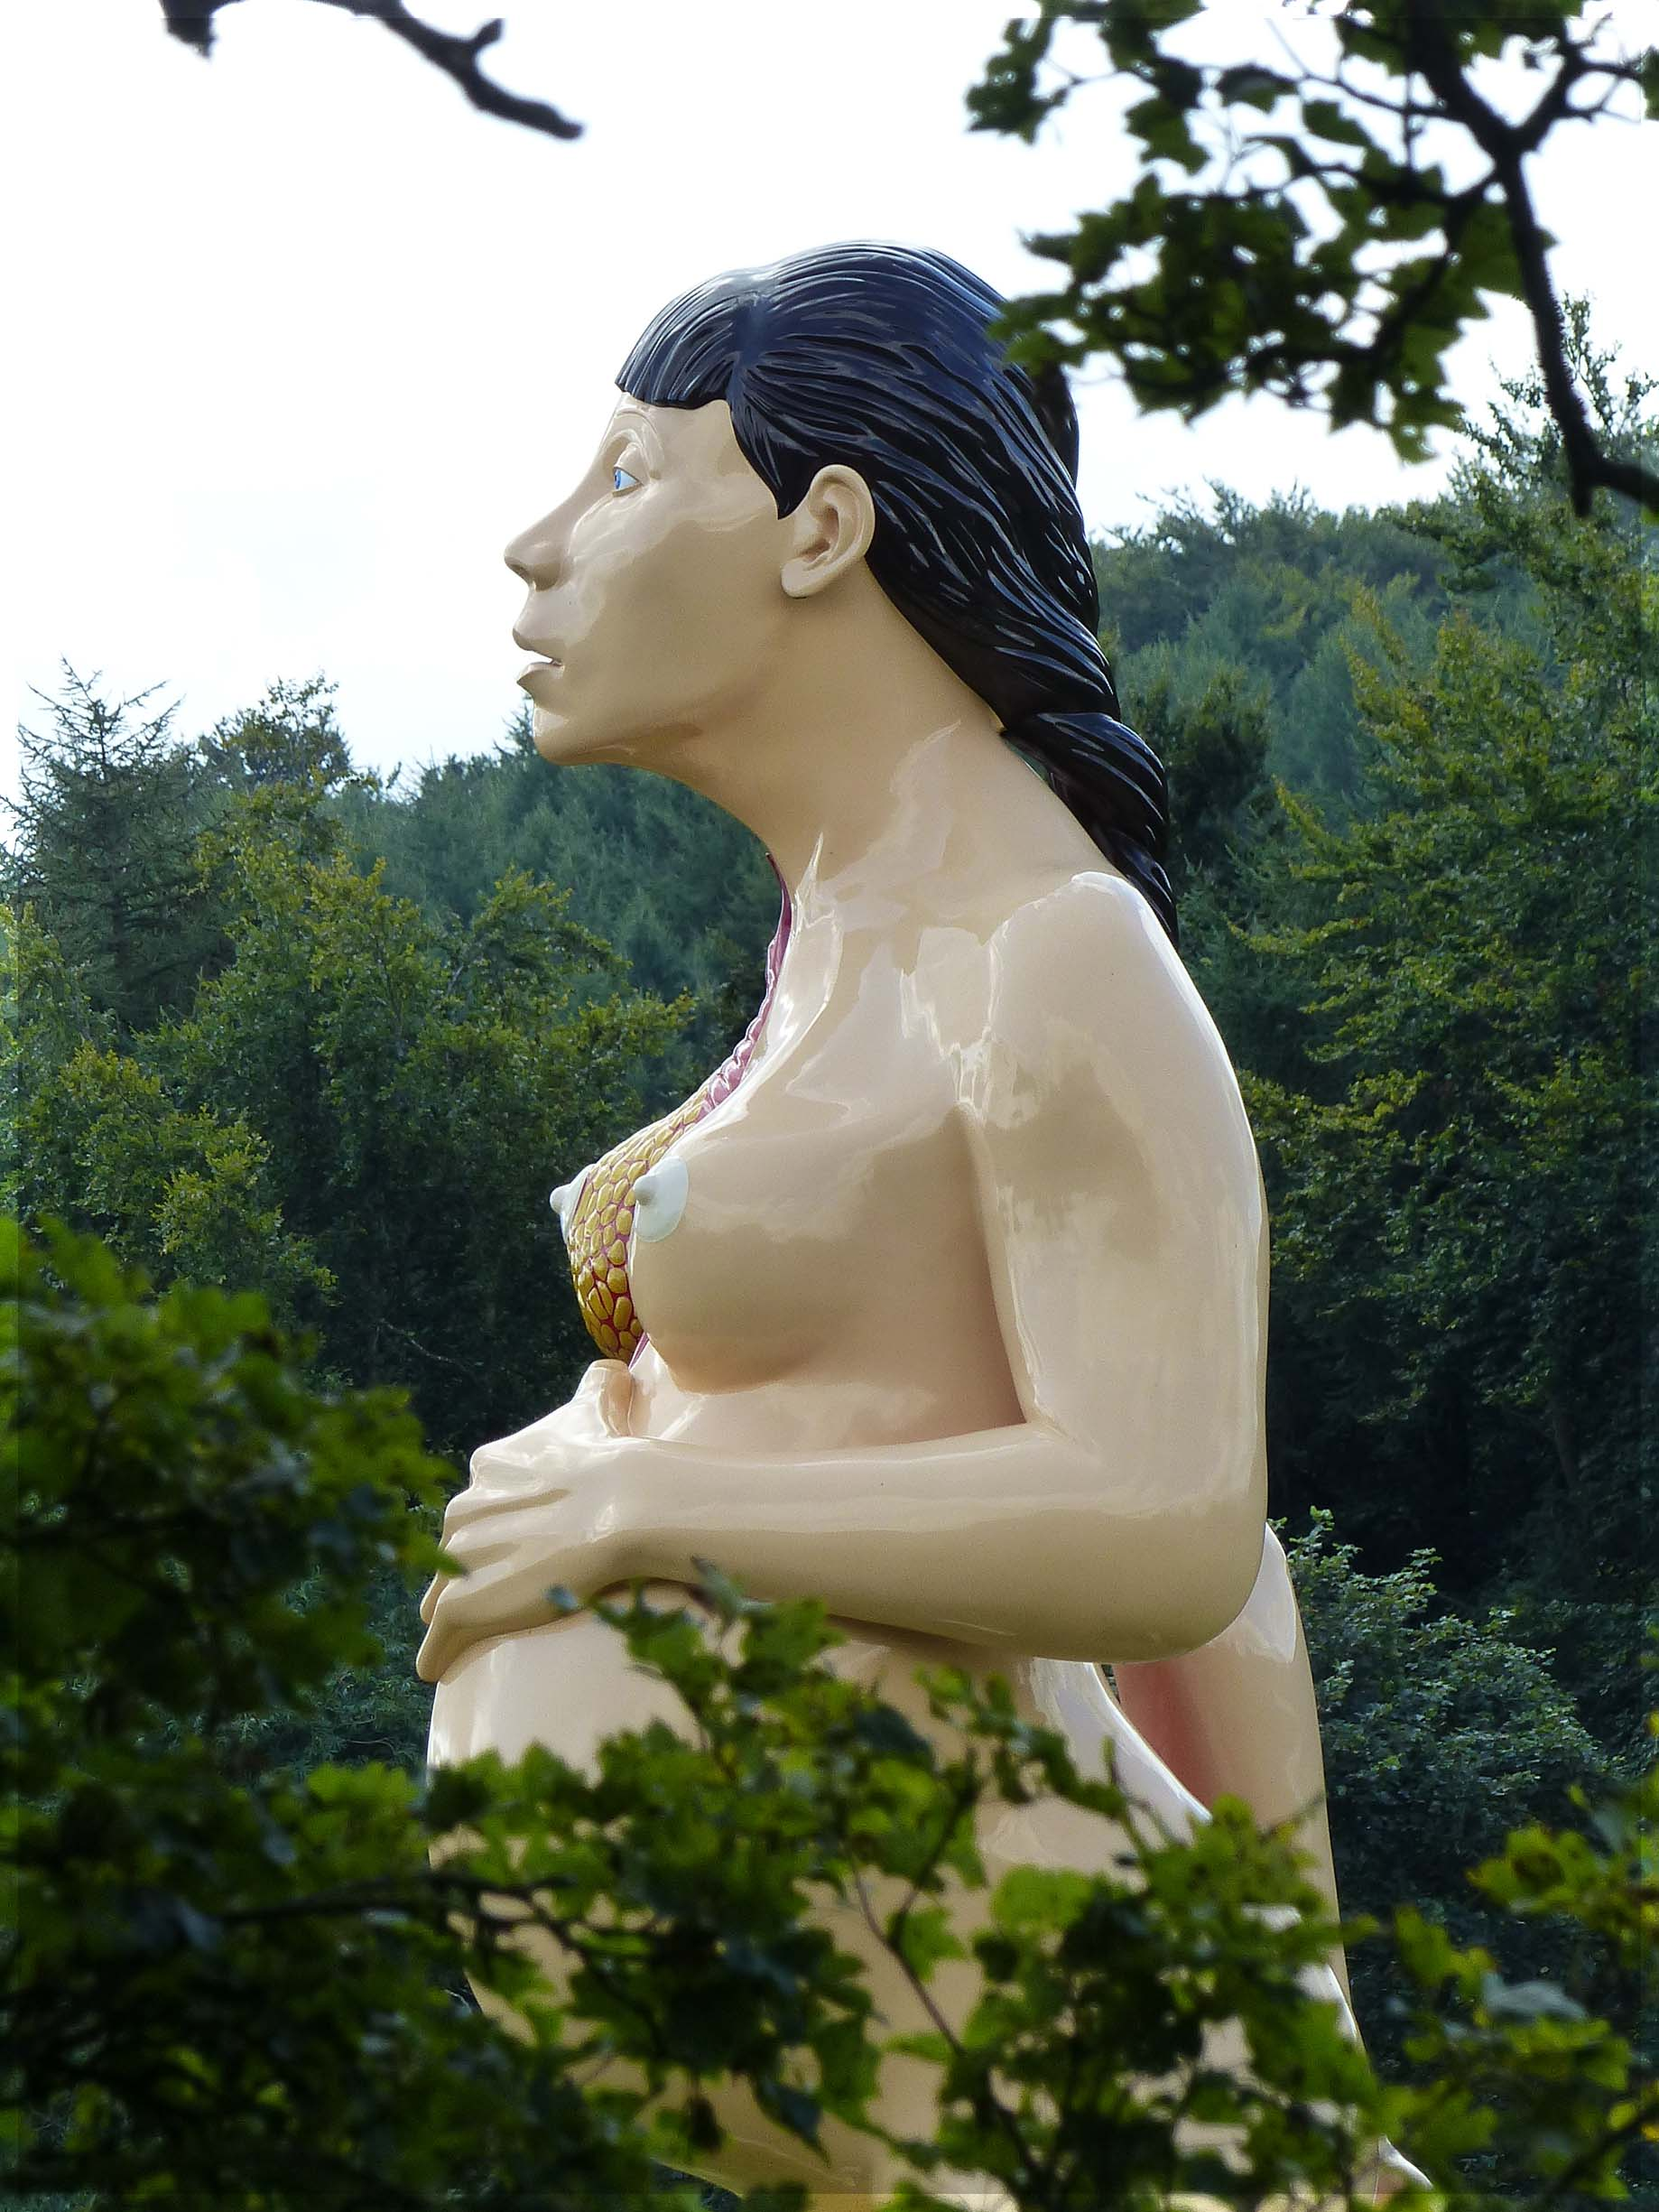 Huge sculpture of pregnant woman seen above trees